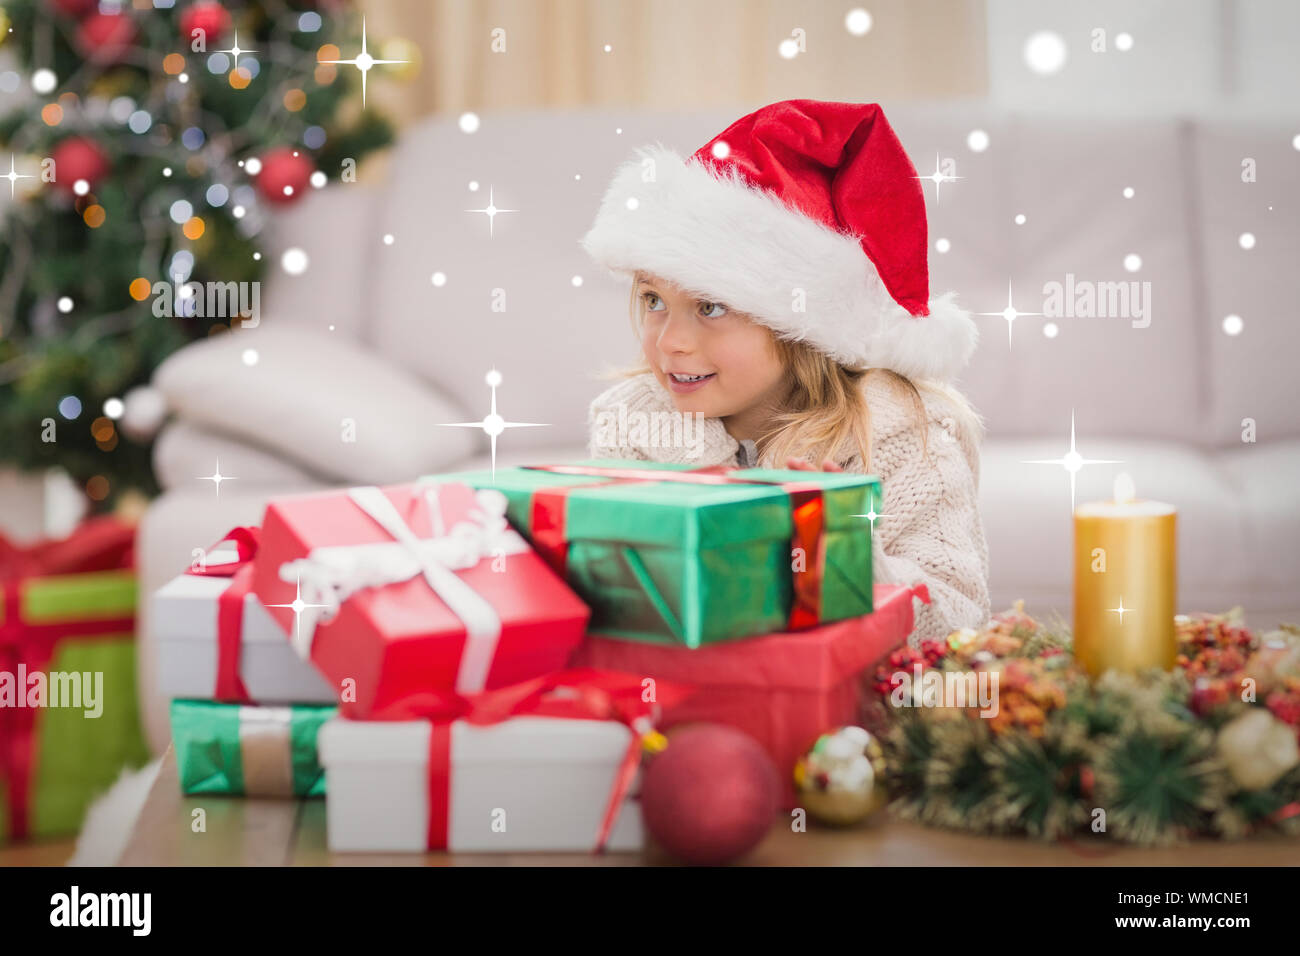 Cute Christmas Gifts For Girlfriend.Cute Little Girl Surrounded By Christmas Gifts Against Snow